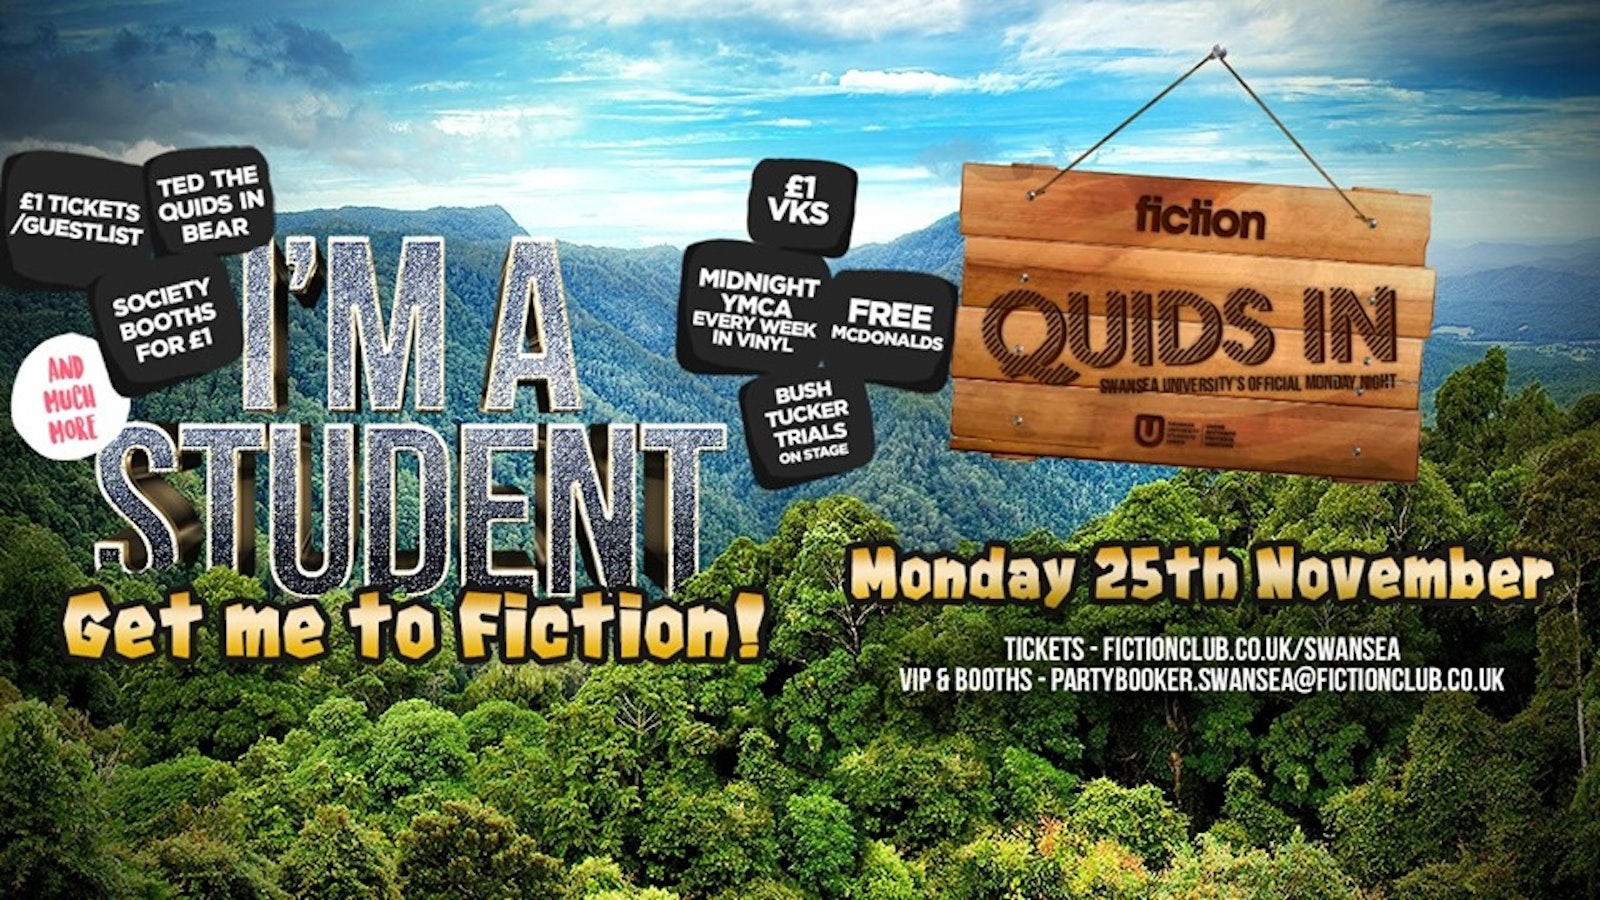 Quids In: I'm A Student, Get Me To Fiction